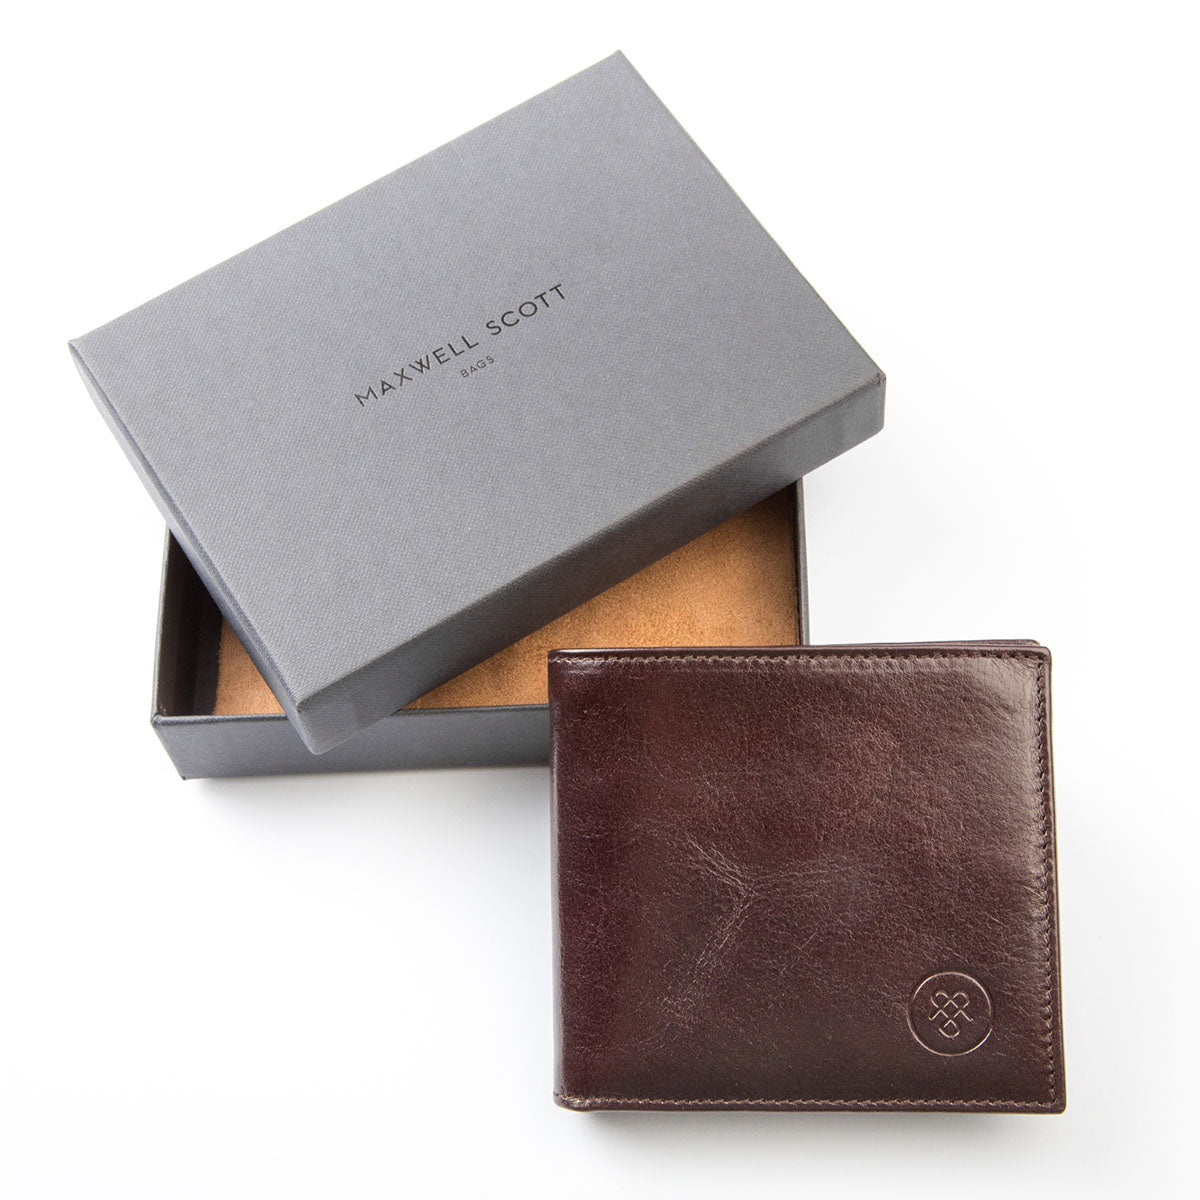 Image 8 of the 'Ticciano' Brown Veg-Tanned Leather Wallet with Coin Pocket